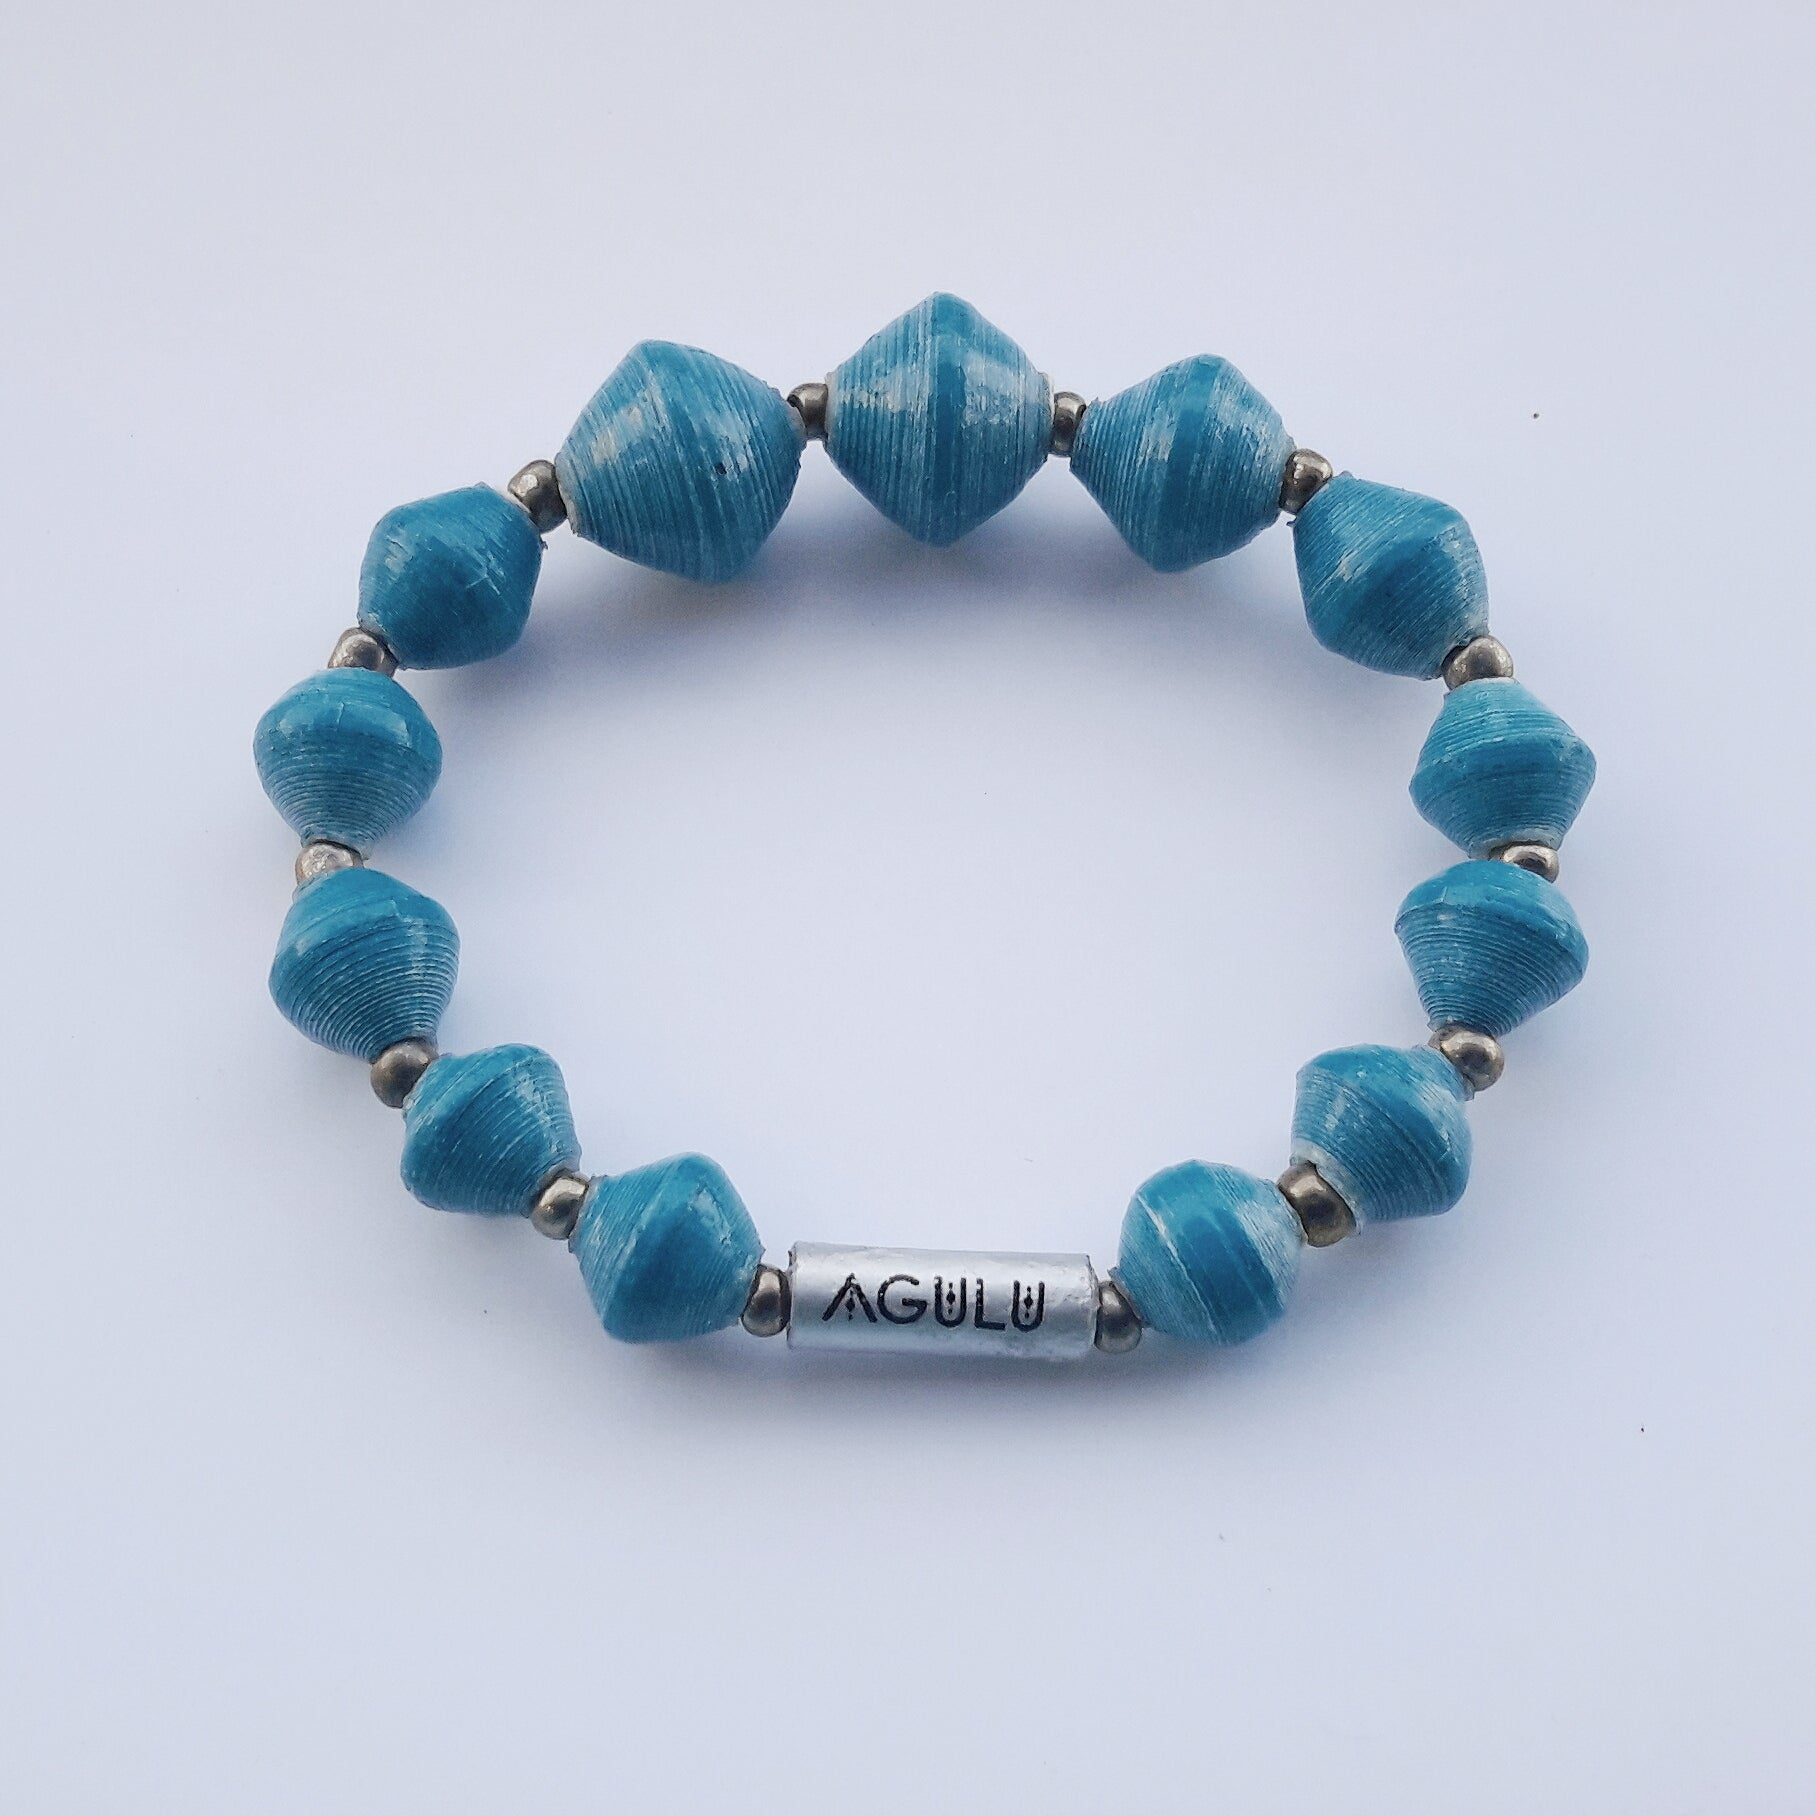 Prussian blue/teal blue/turquoise hand made ethical design paper bead bracelet made out of recycled paper in Uganda by principles of fair trade, ethical and sustainable fashion, empowering women of post war area, by Finnish / Scandinavian brand, Agulu Paper Beads. Eettinen petroolinsininen/turkoosi käsintehty design rannekoru, joka on tehty kierrätyspaperista reilun kaupan periaattein työllistämällä Ugandalaisia nasia.